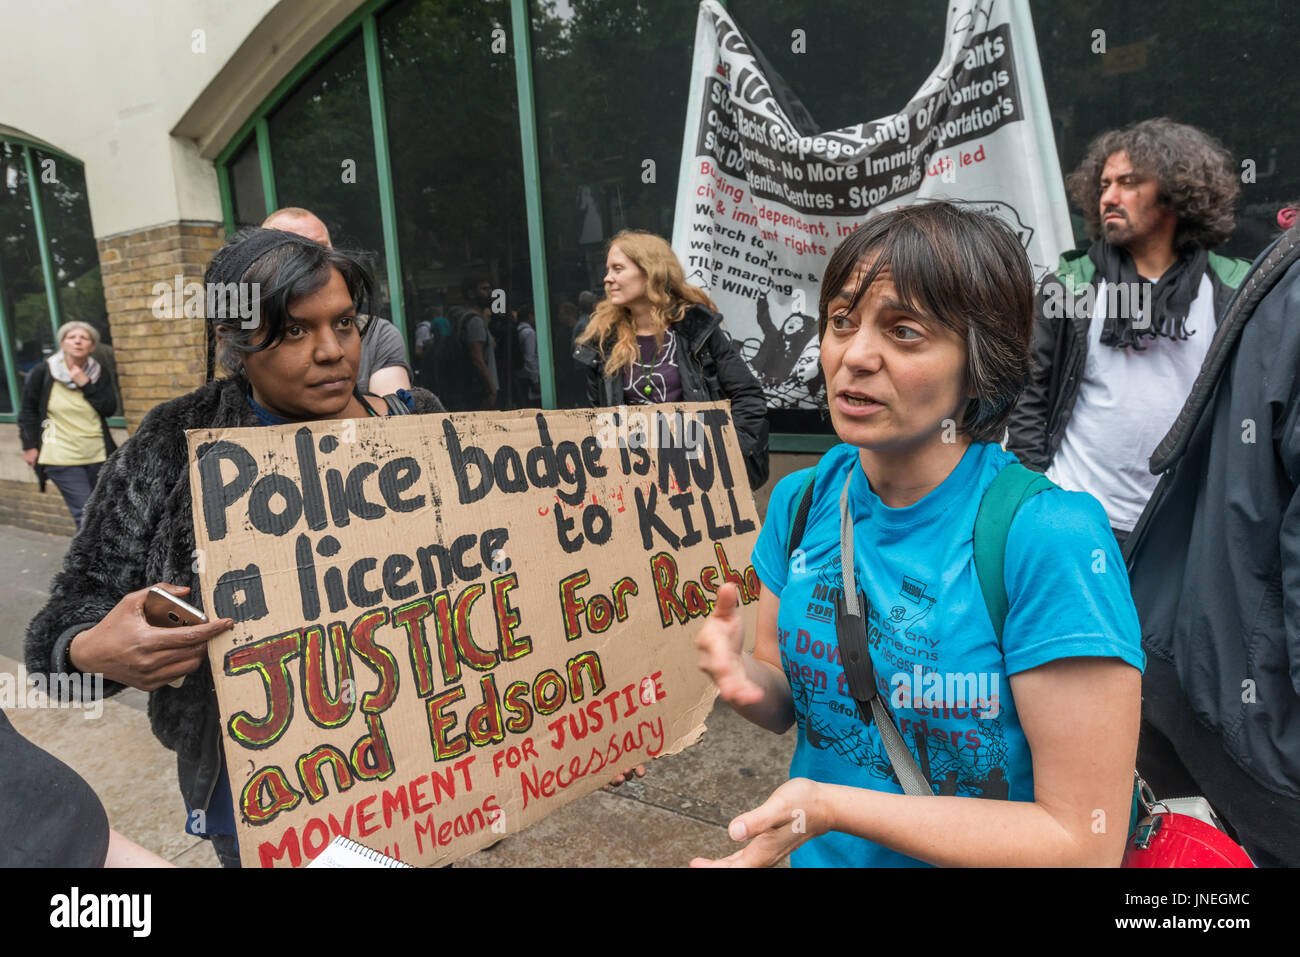 London, UK. 29th July, 2017. London, UK. 29th July 2017. Anna from Movement for Justice is interviewed at the protest - Stock Image